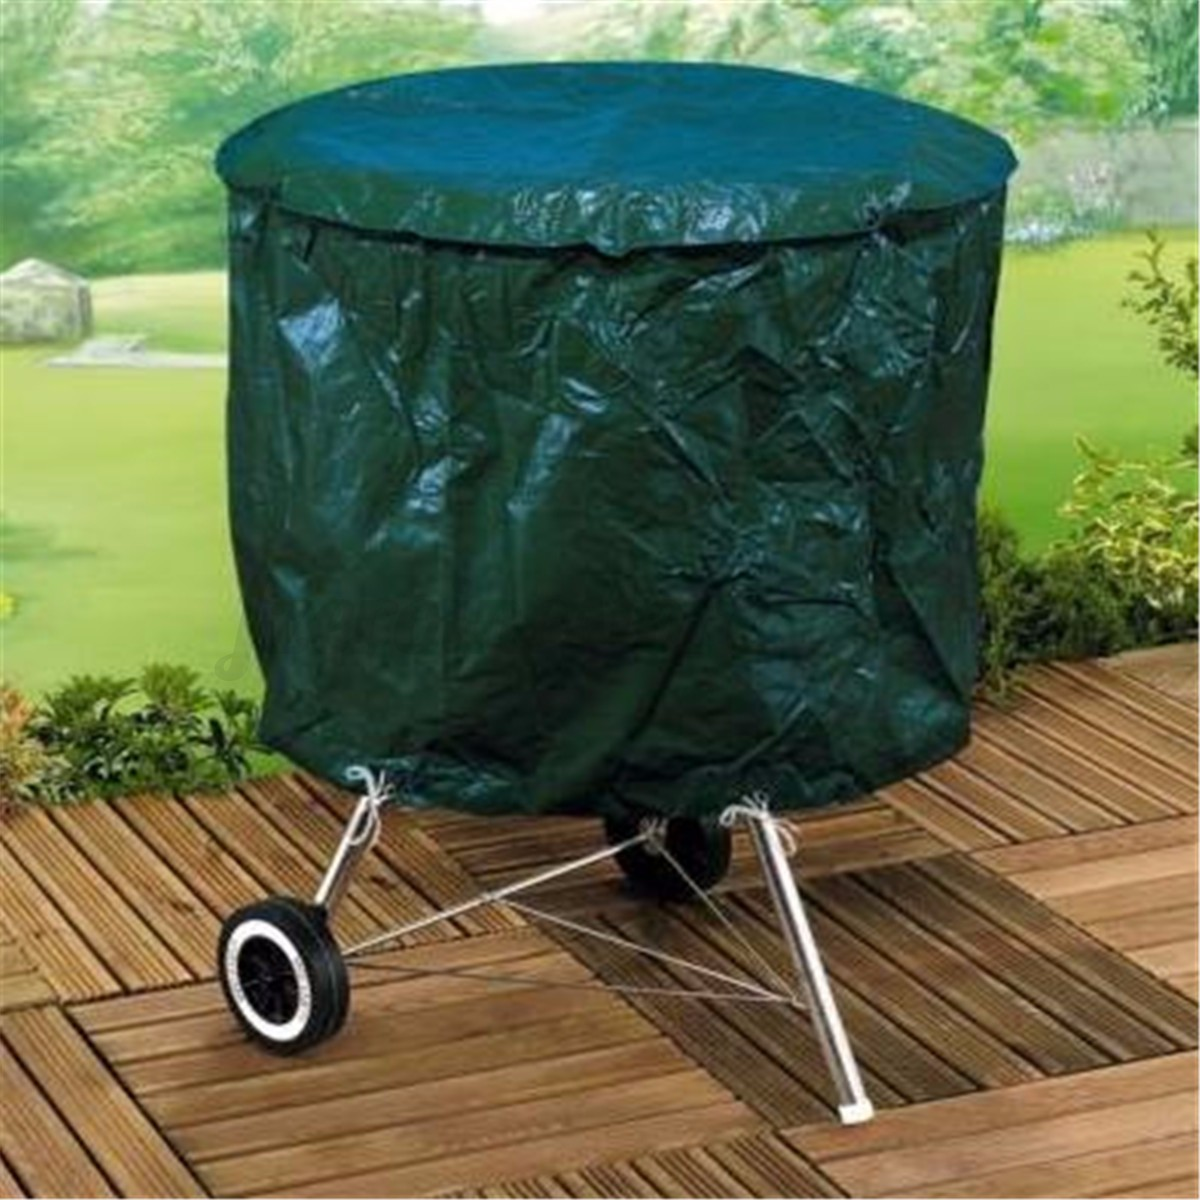 Waterproof-Furniture-Cover-For-Outdoor-Garden-Patio-Bench-Table-Rain-Protection thumbnail 21